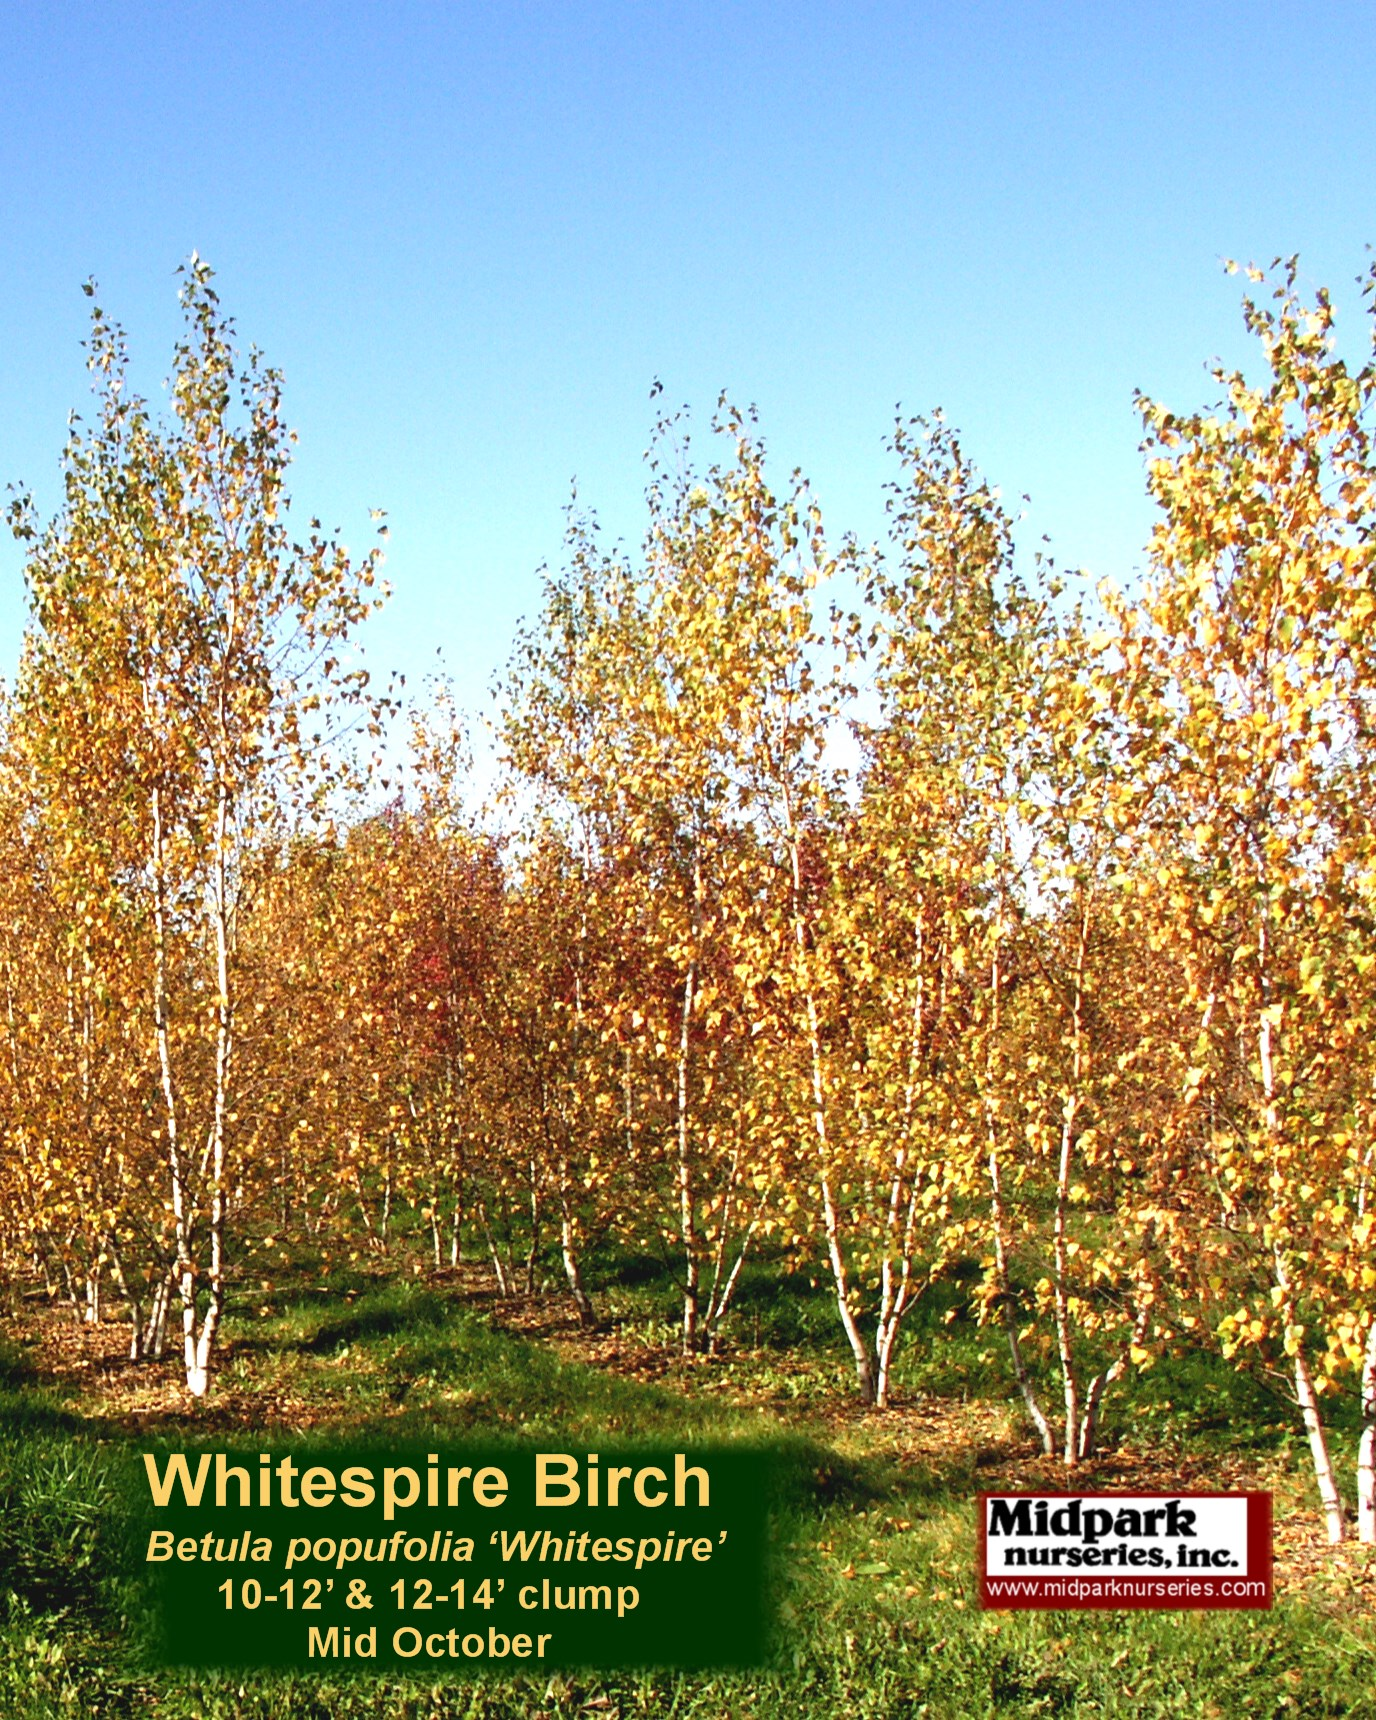 Whitespire_Birch_10to14ft_07_1025_8x10.jpg